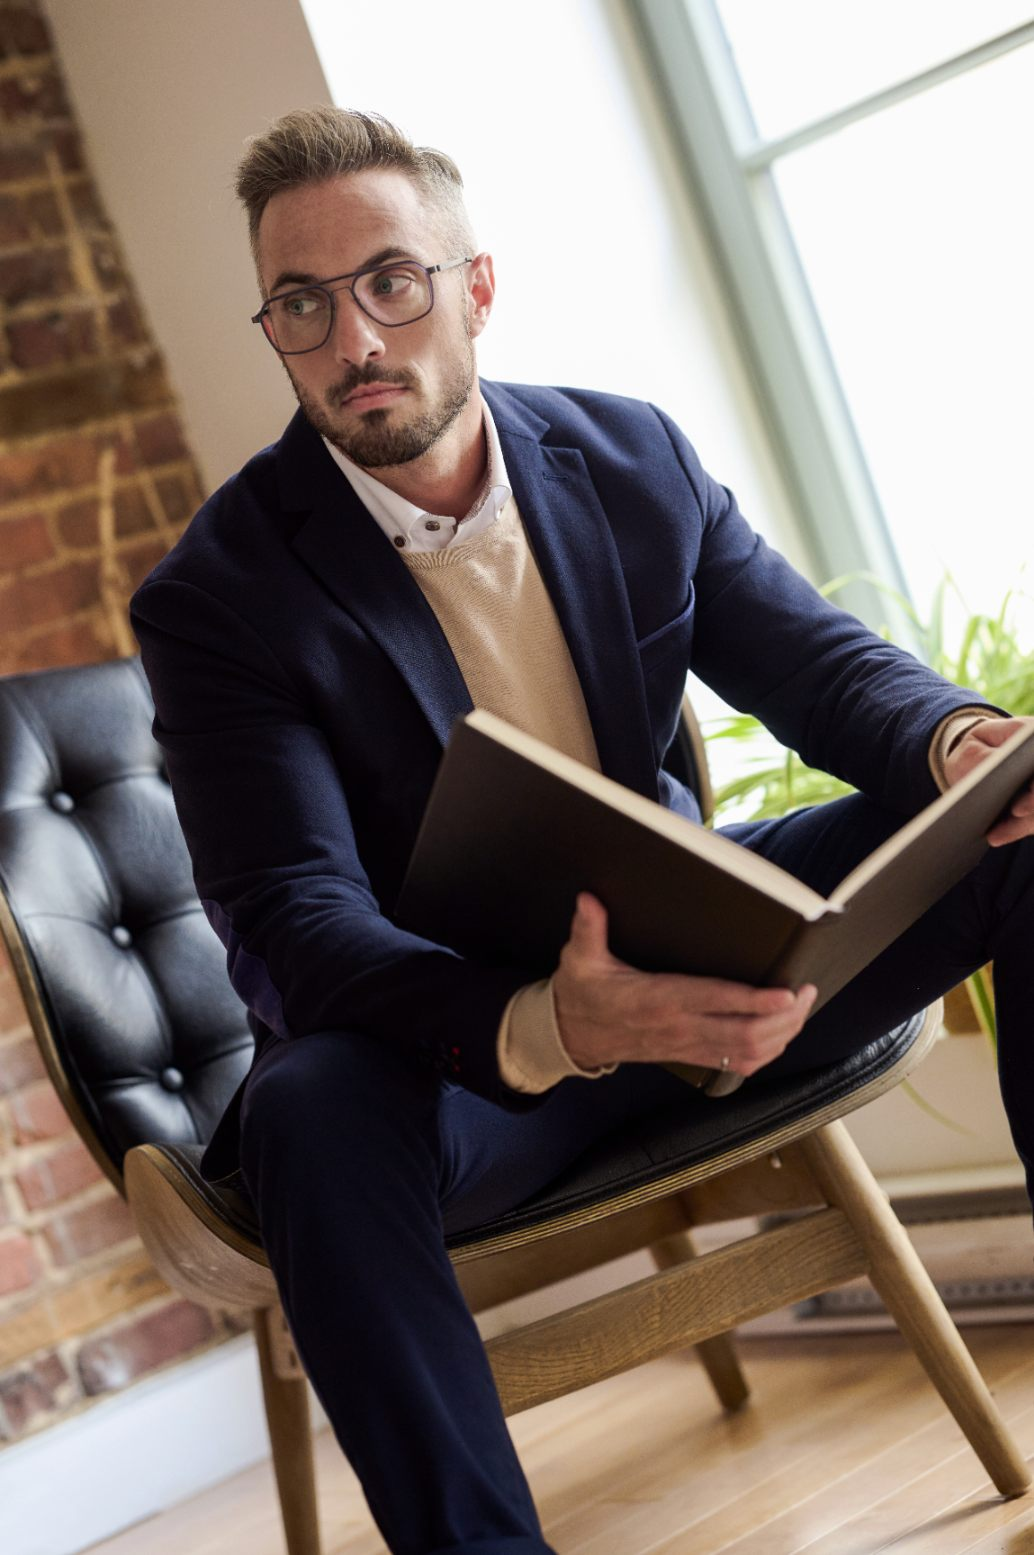 Classy man wearing glasses sitting with a book in hands